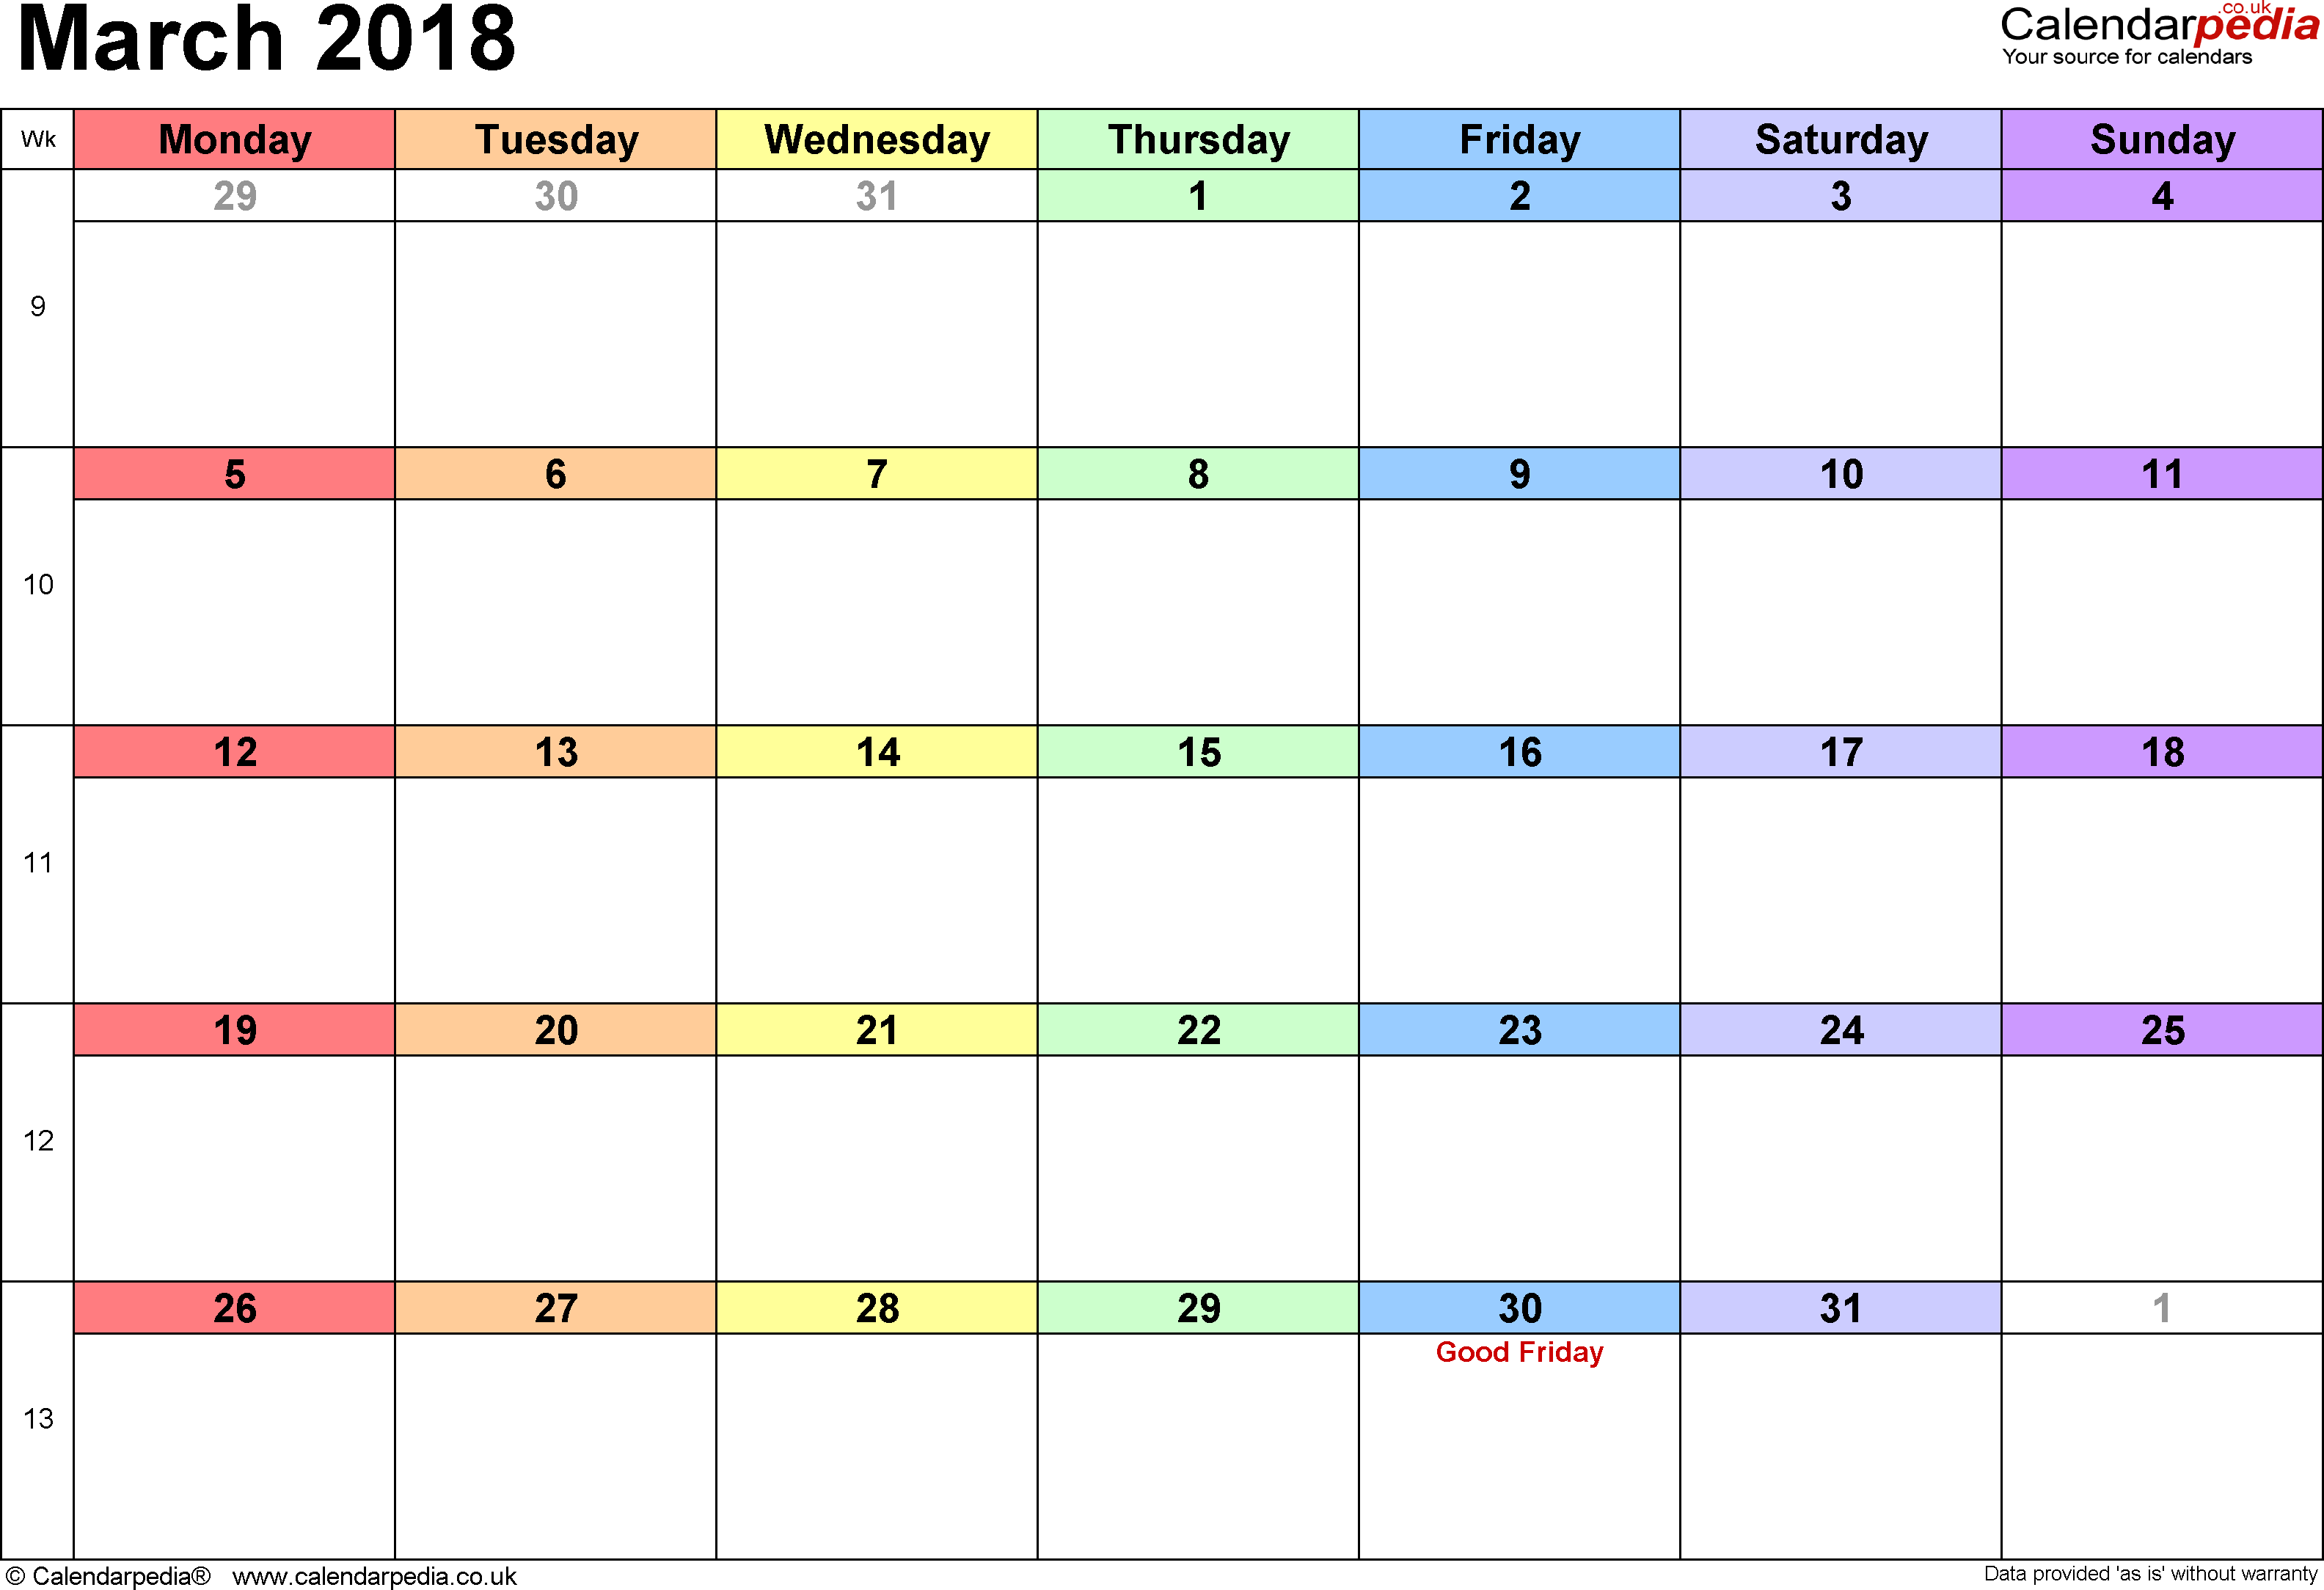 calendar march 2018 landscape orientation 1 page with uk bank holidays and week